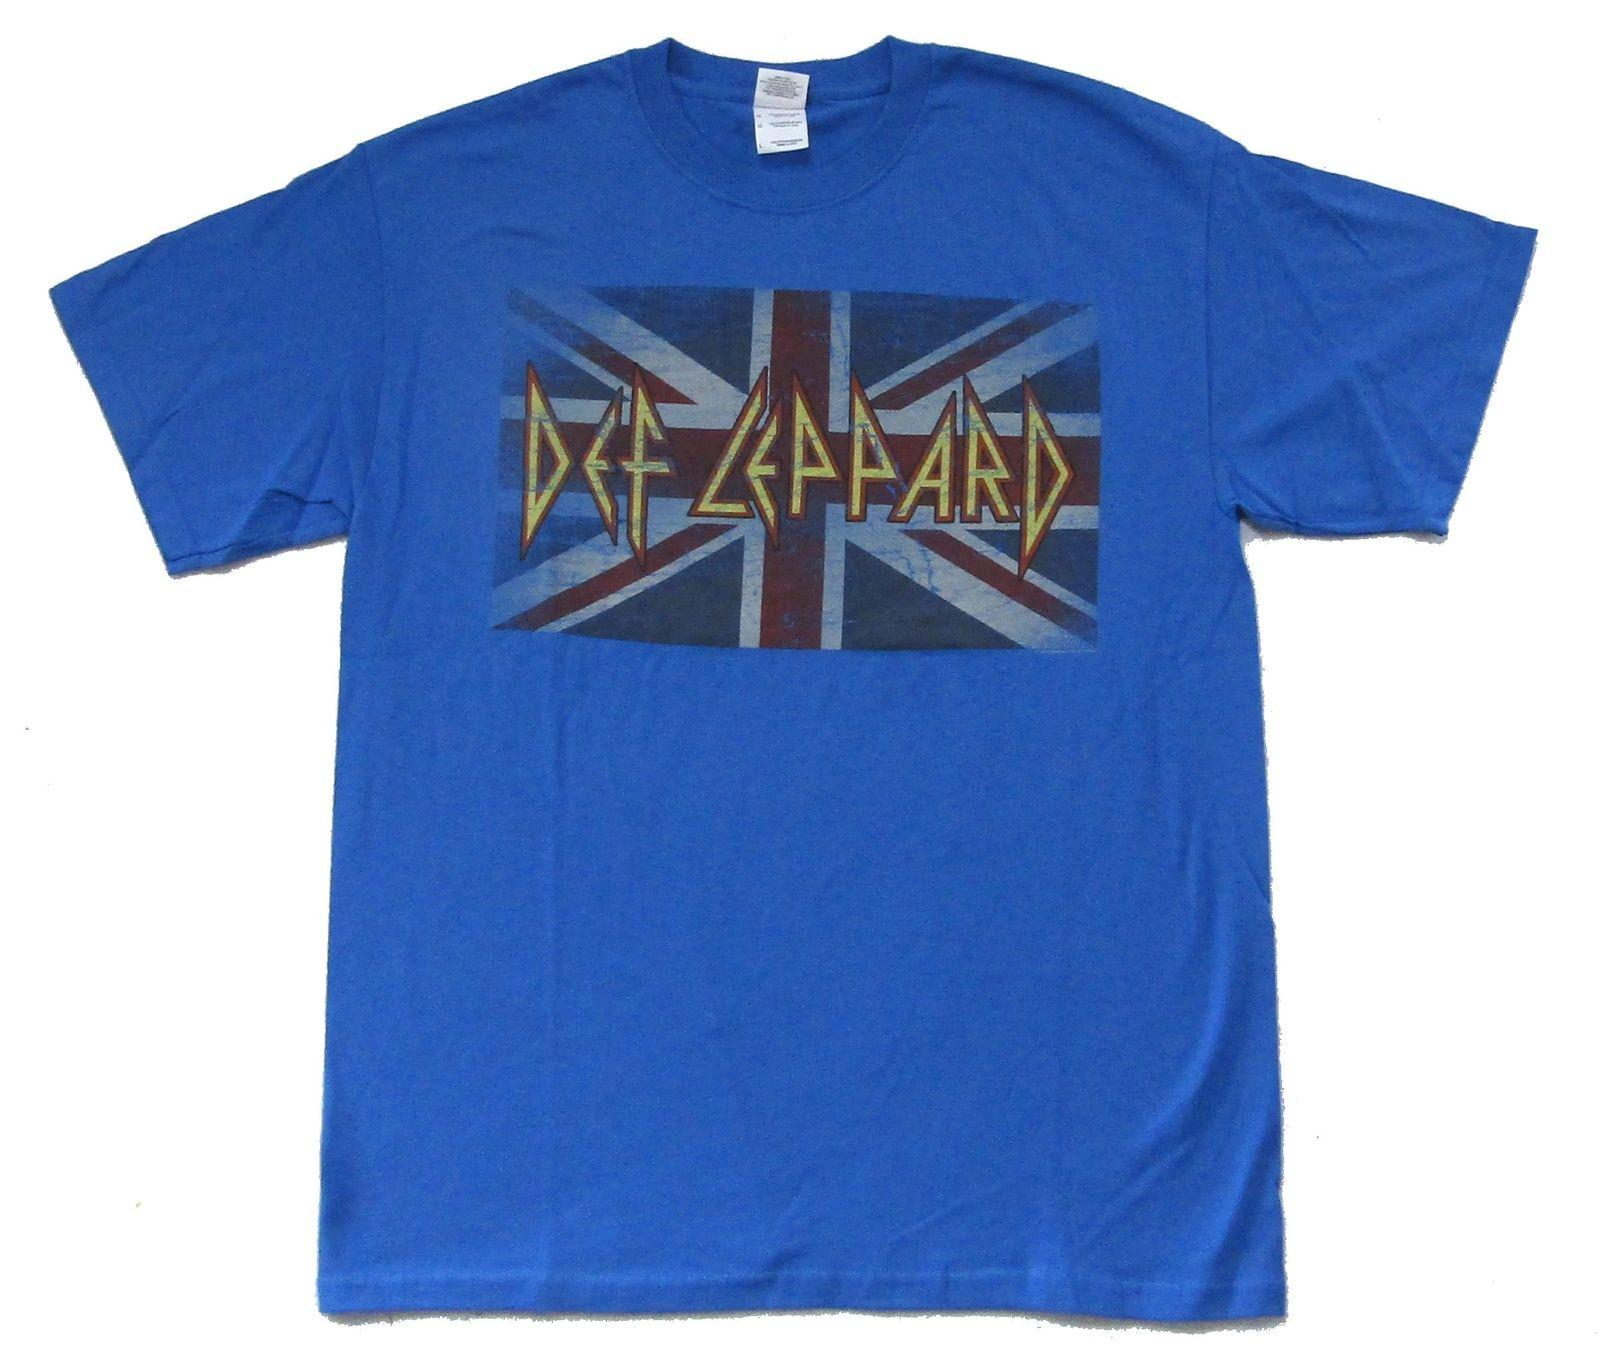 80c069af Def Leppard Distressed Union Jack Flag Logo Blue T Shirt New Official Band  Funny Unisex Casual Gift Crazy T Shirts Online Cool Looking T Shirts From  ...